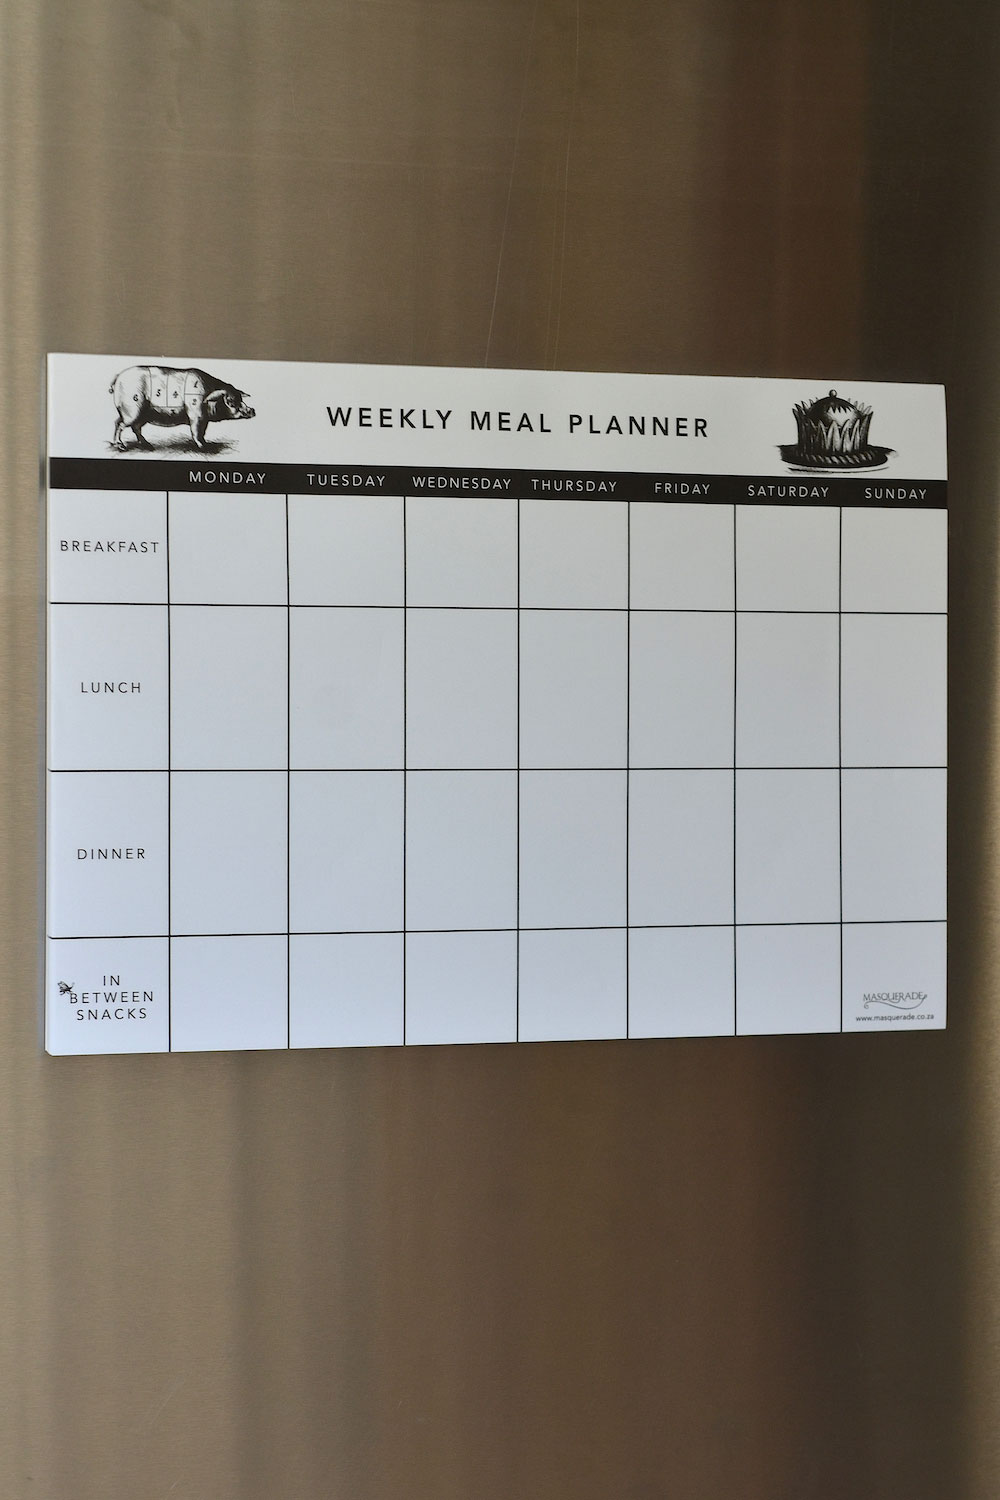 Weekly Meal Planner Masquerade